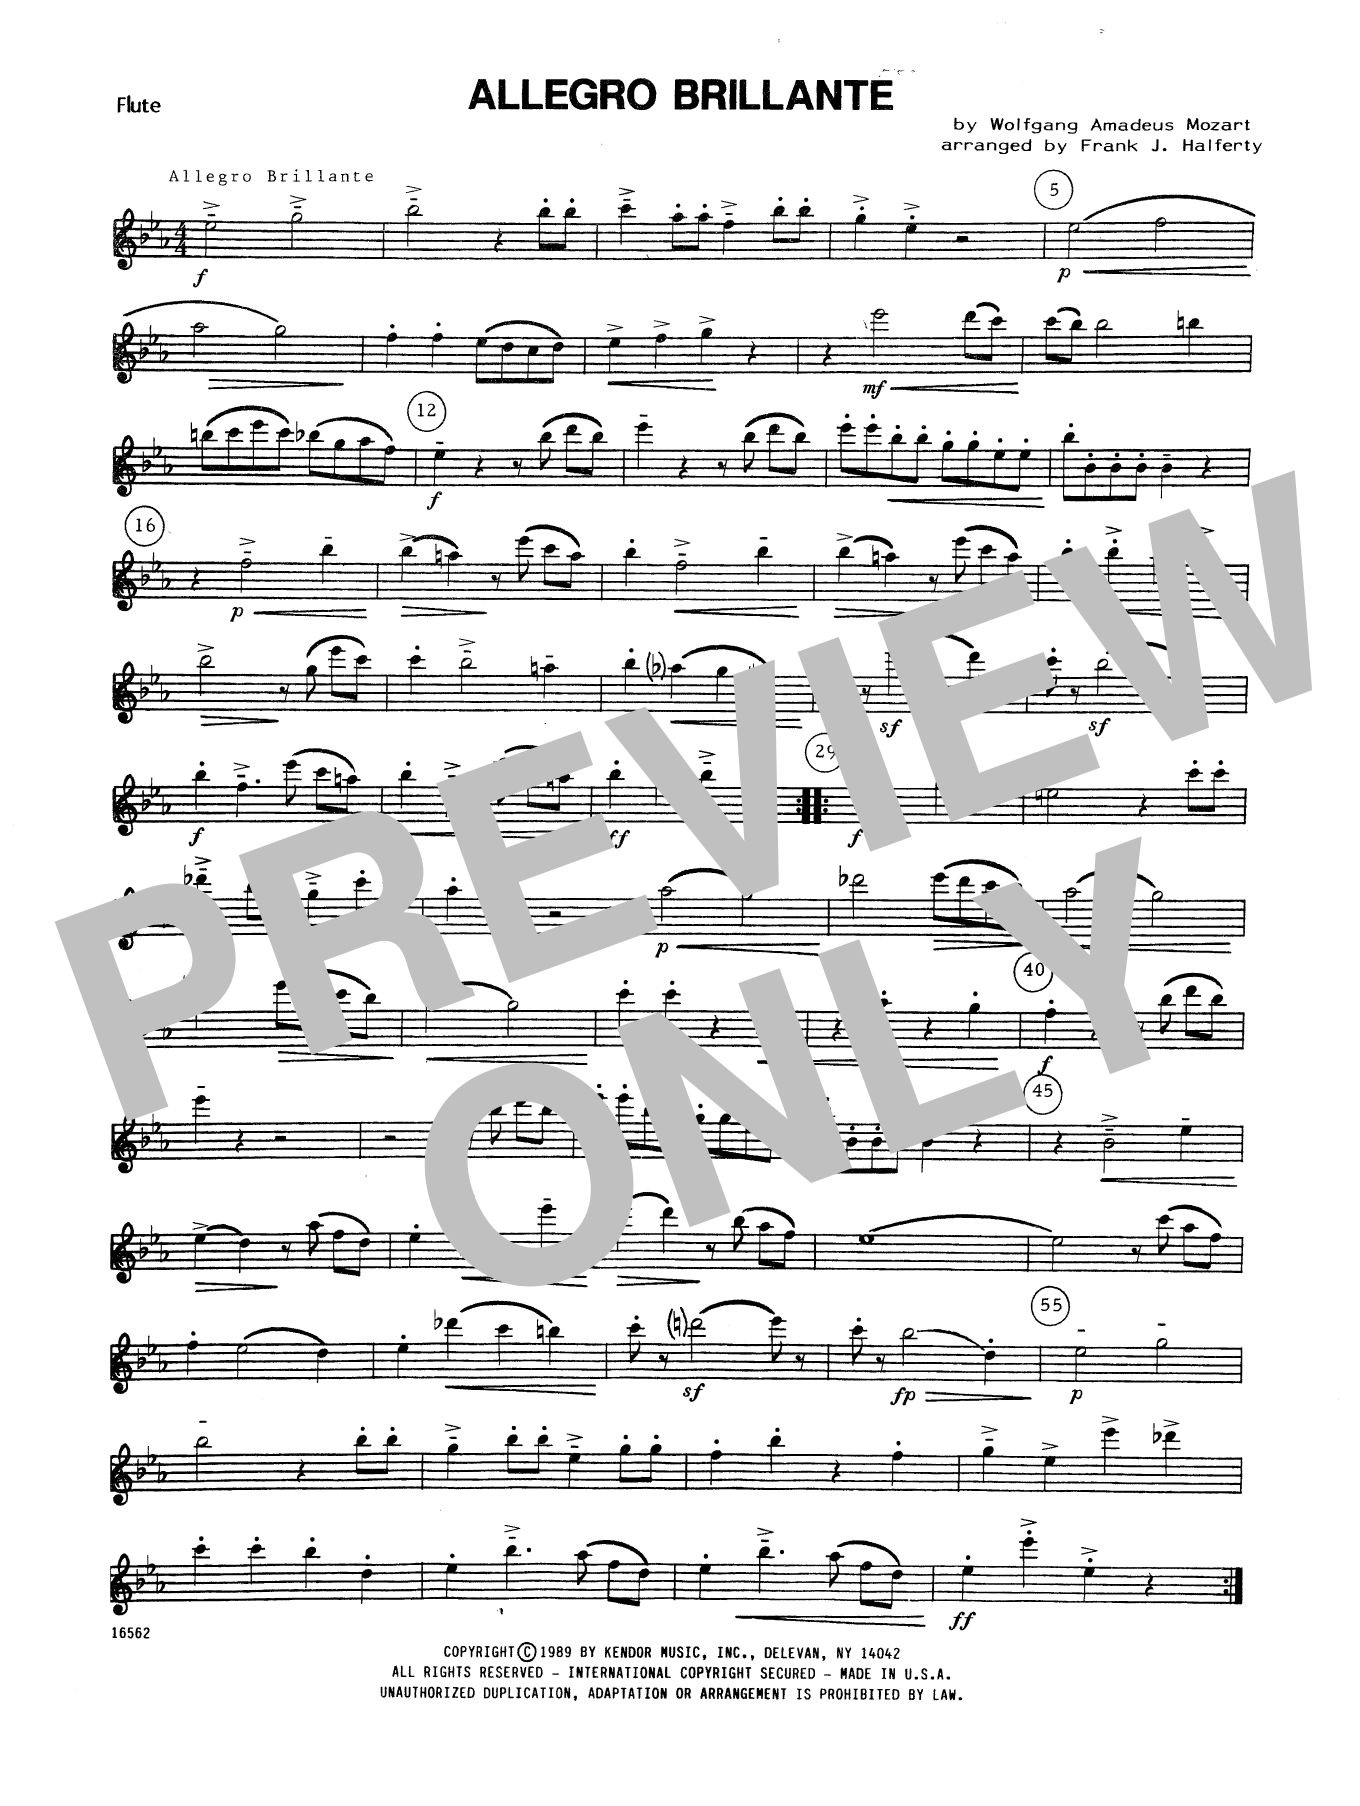 Allegro Brillante - Flute Sheet Music